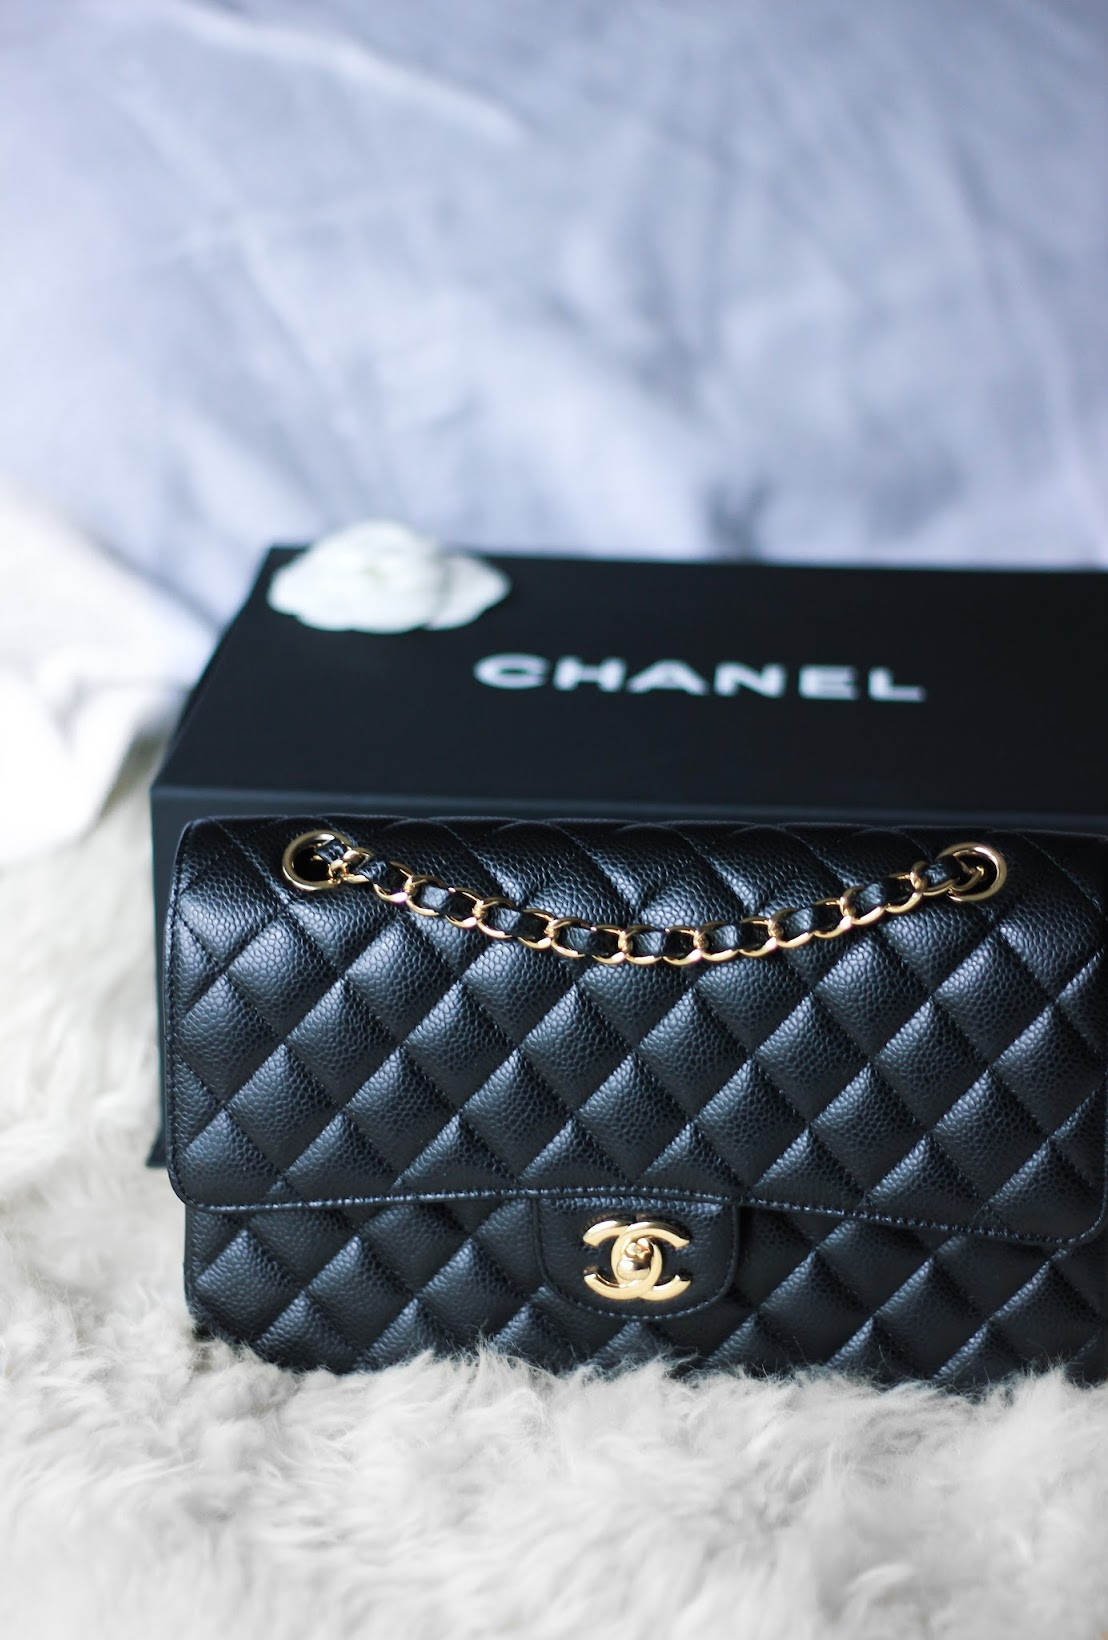 74ac1f61a355 So a little background...I love Chanel. But not in the cliche